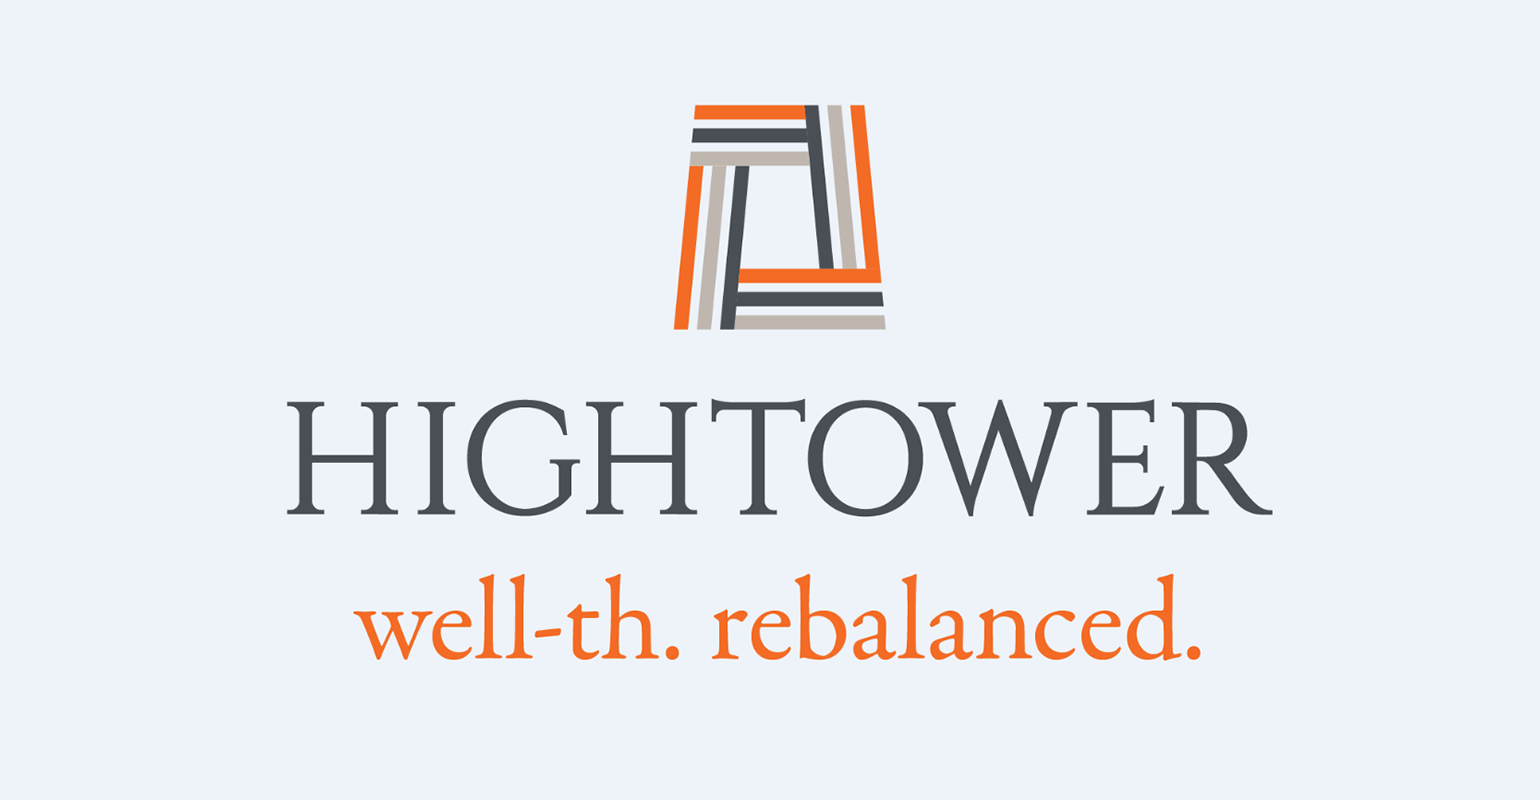 Hightower Launches New Branding Campaign